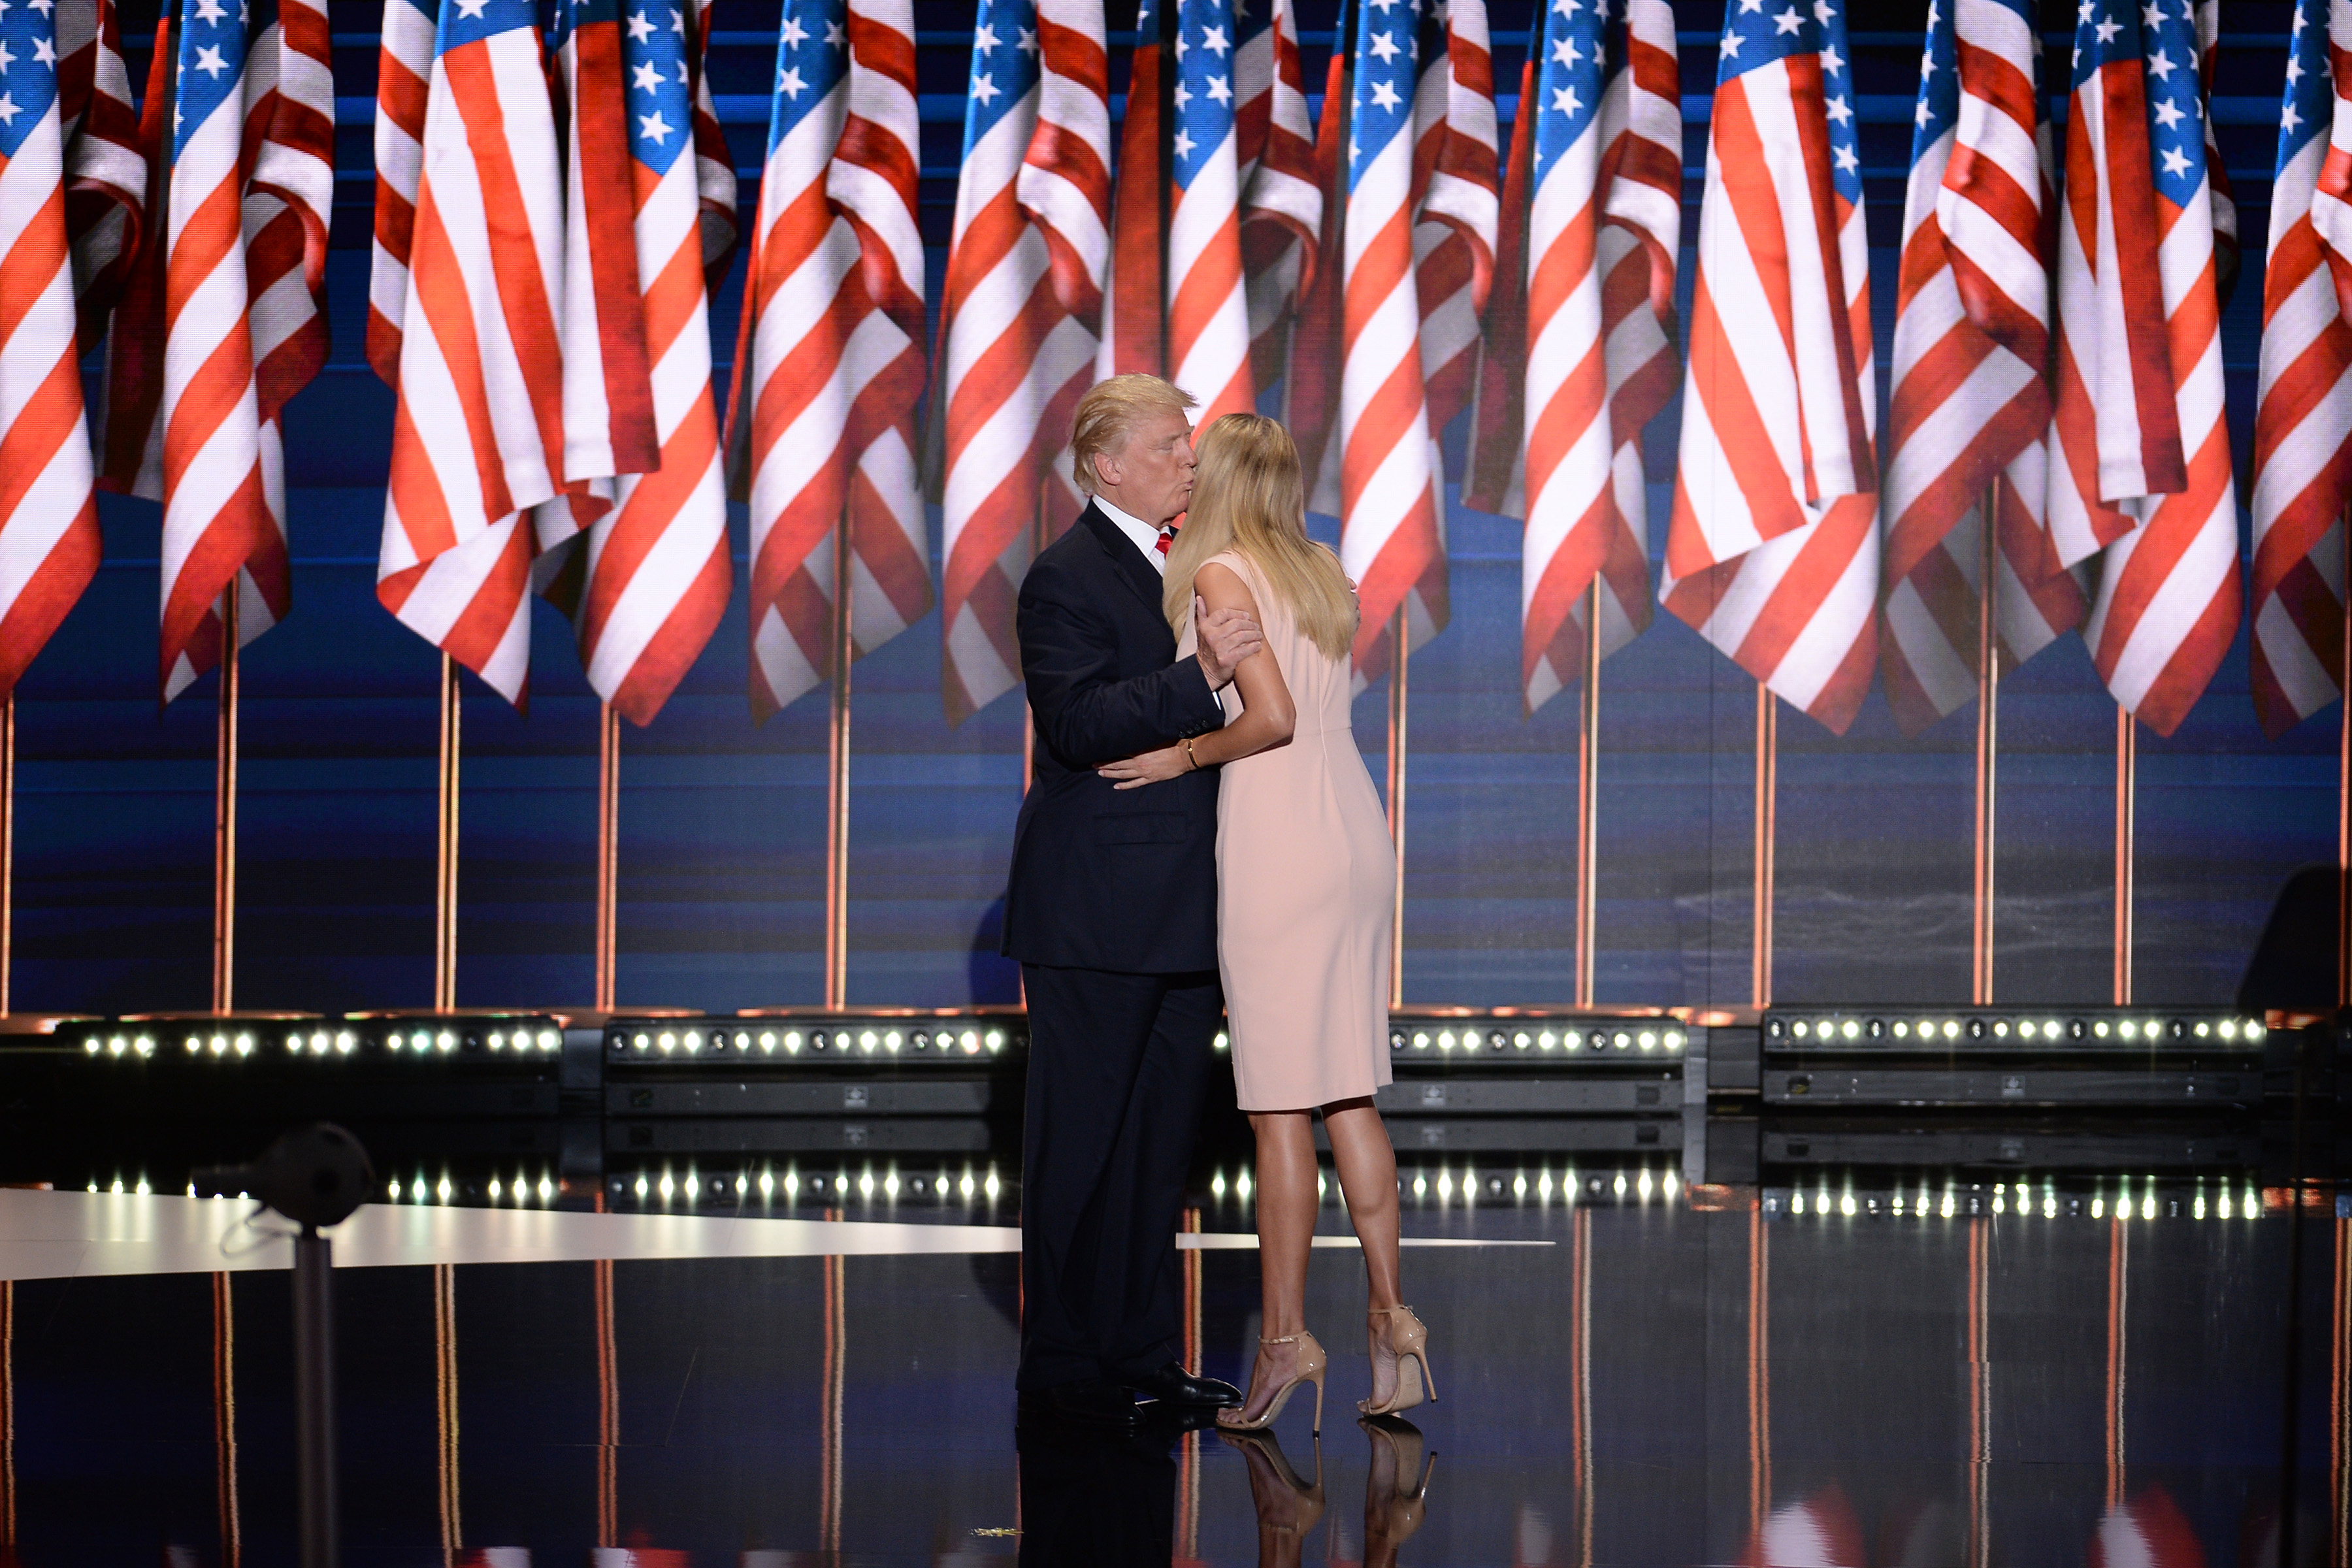 Republican presidential candidate Donald kisses his daughter Ivanka Trump before he addresses delegates on the fourth and final day of the Republican National Convention at the Quicken Loans Arena in Cleveland, OH, on July 21, 2016